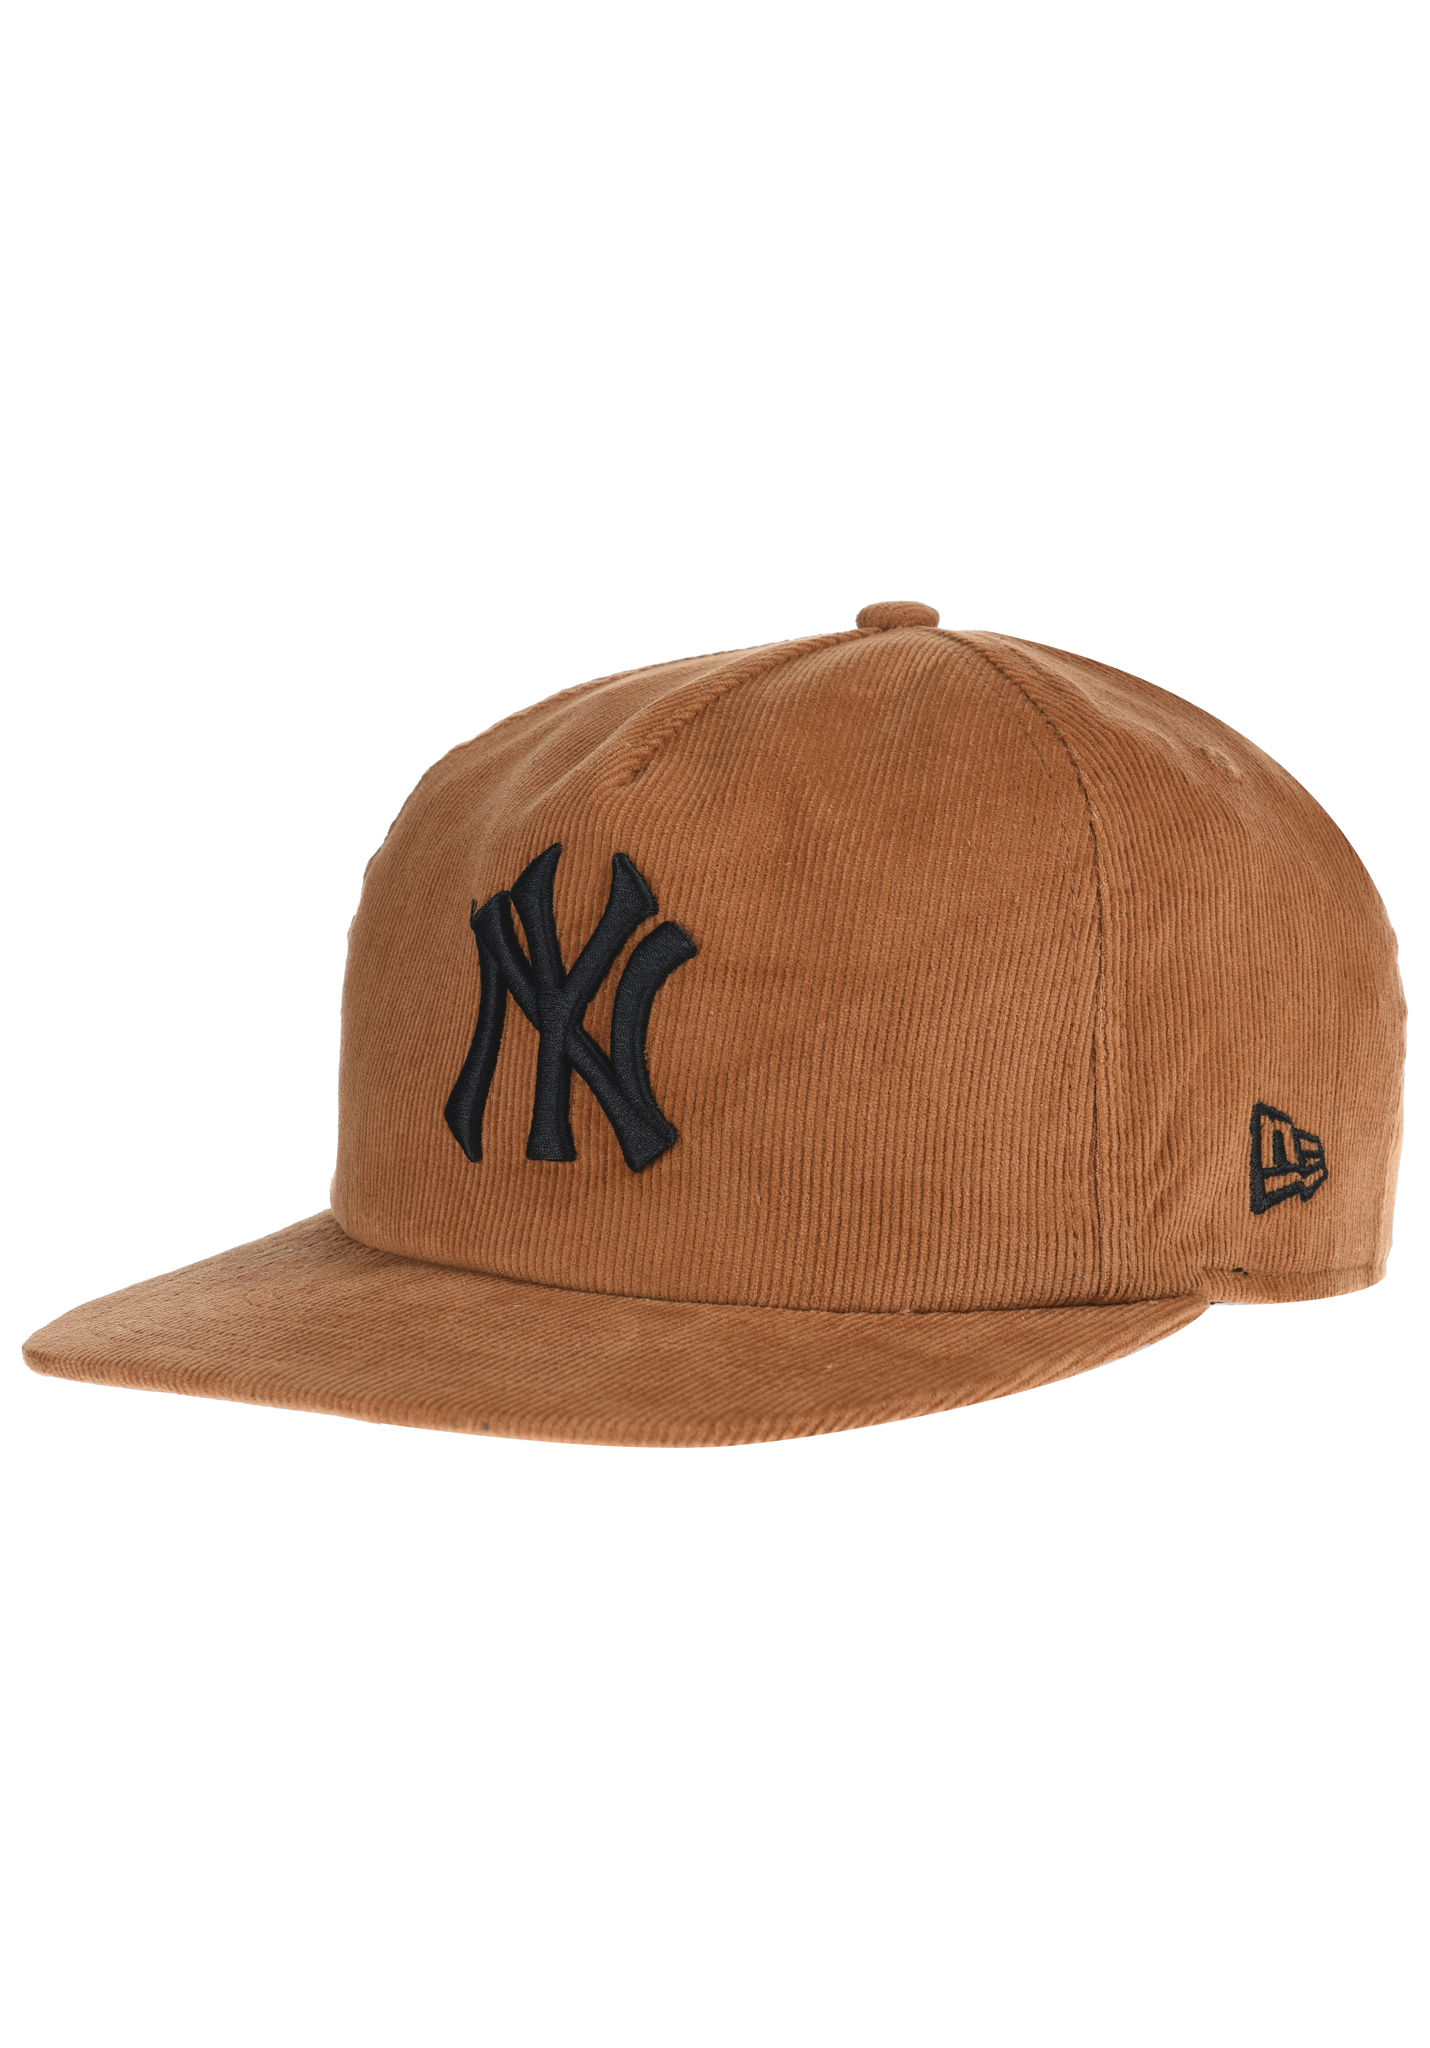 NEW Era MLB Coop Cord New York Yankees Co - Snapback Cap - Brown - Planet  Sports c05c5cefb03